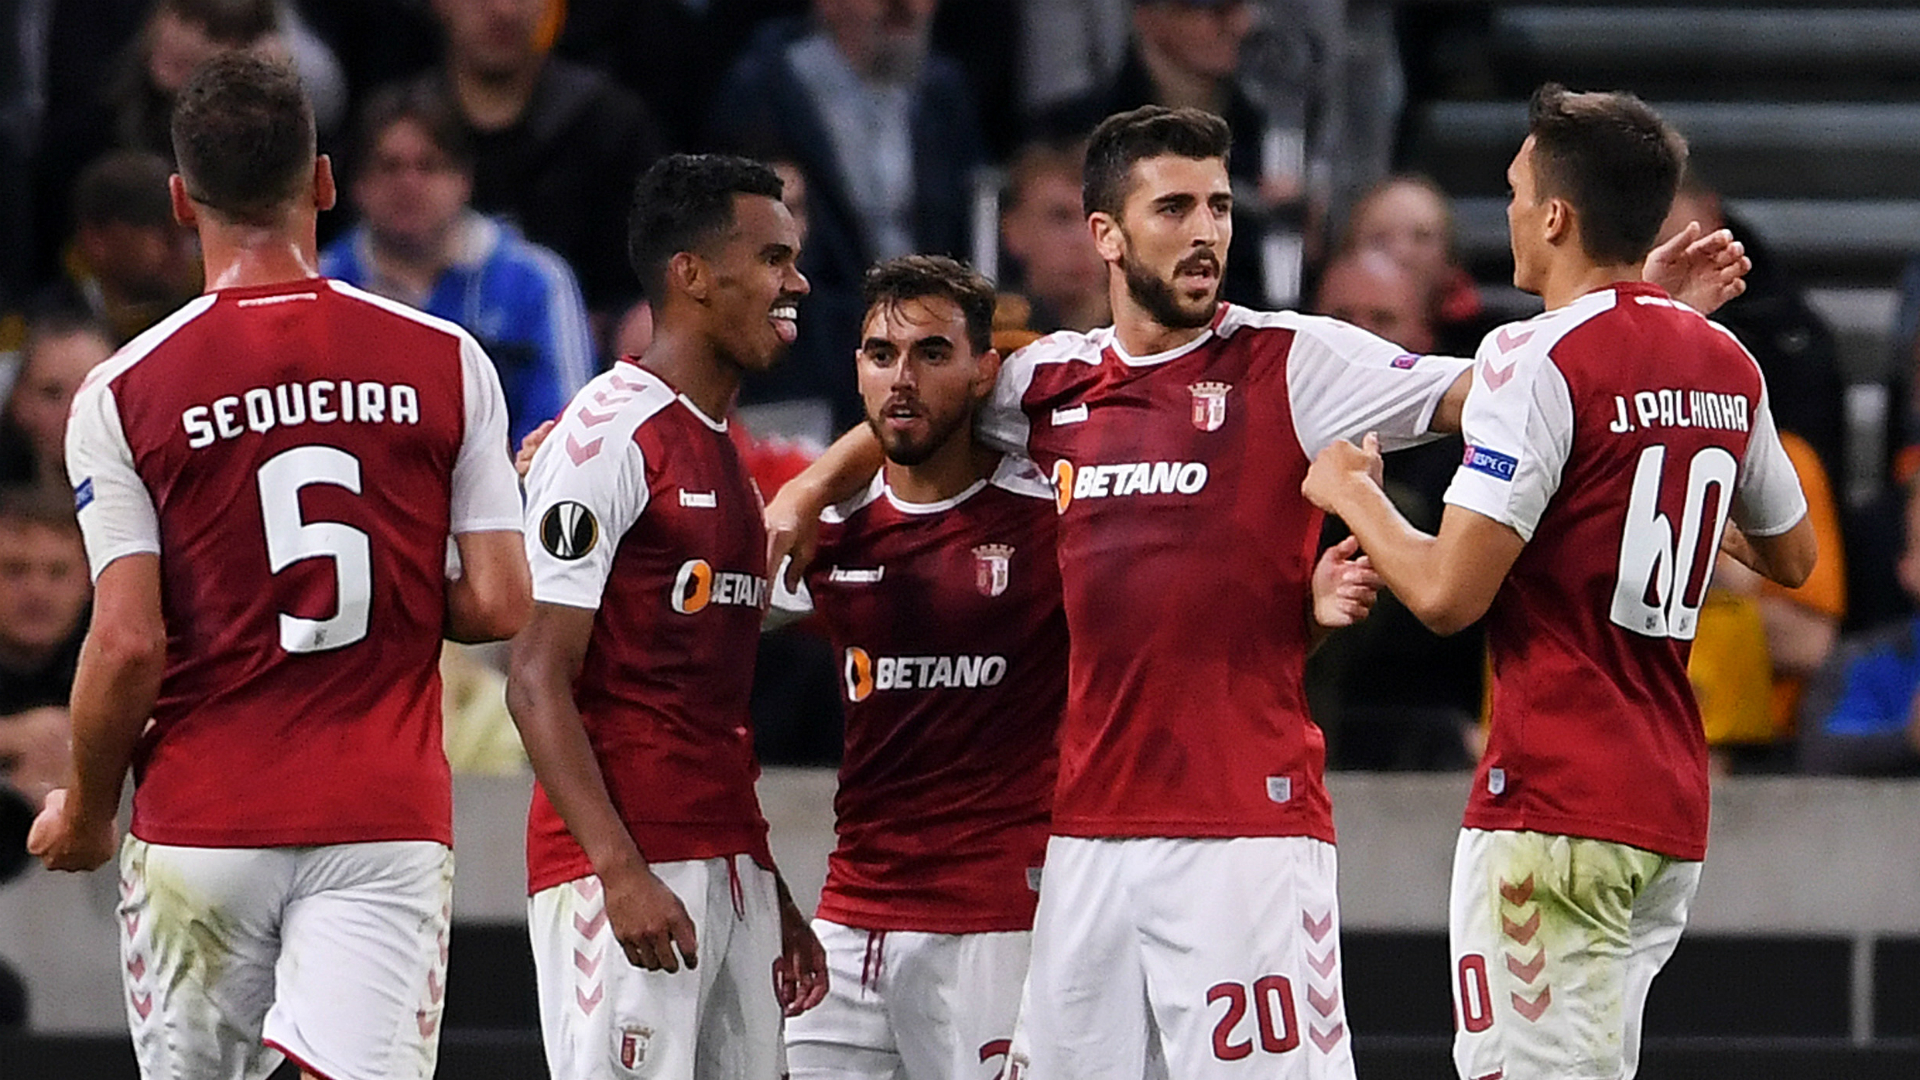 Wolves 0-1 Braga: Hosts punished by Horta in Europa League opener